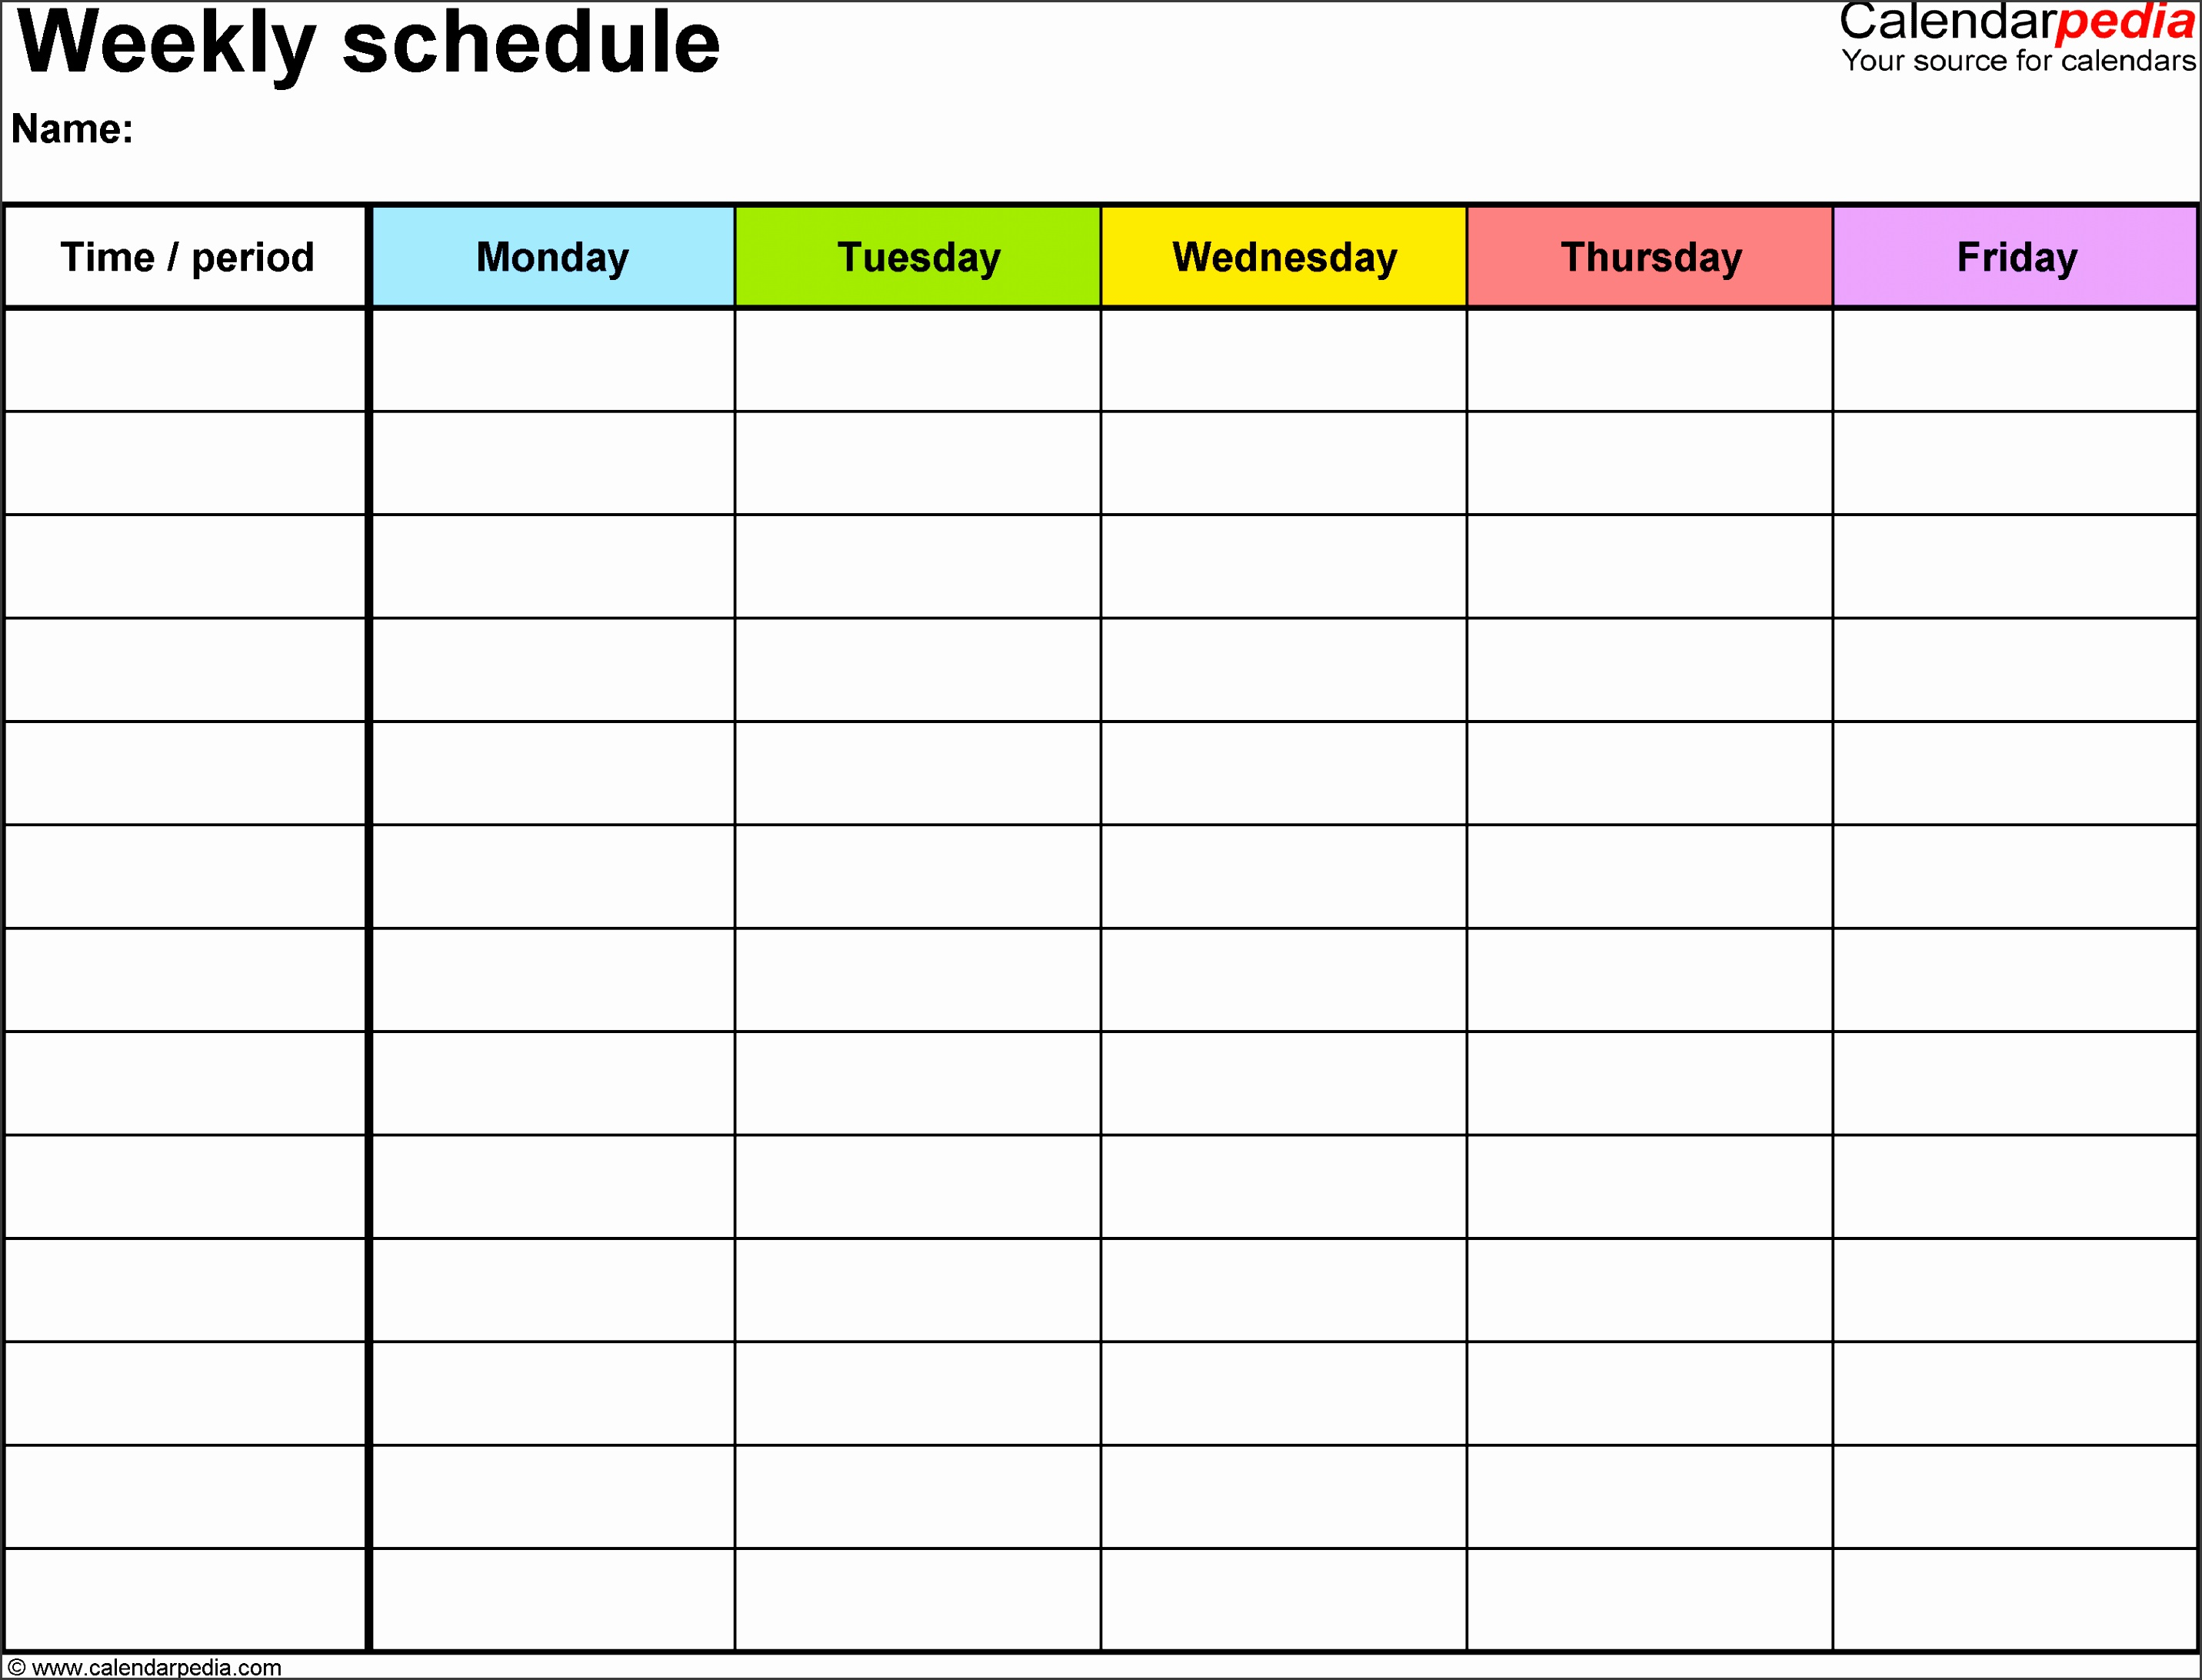 Weekly schedule template for Word version 1 landscape 1 page Monday to Friday